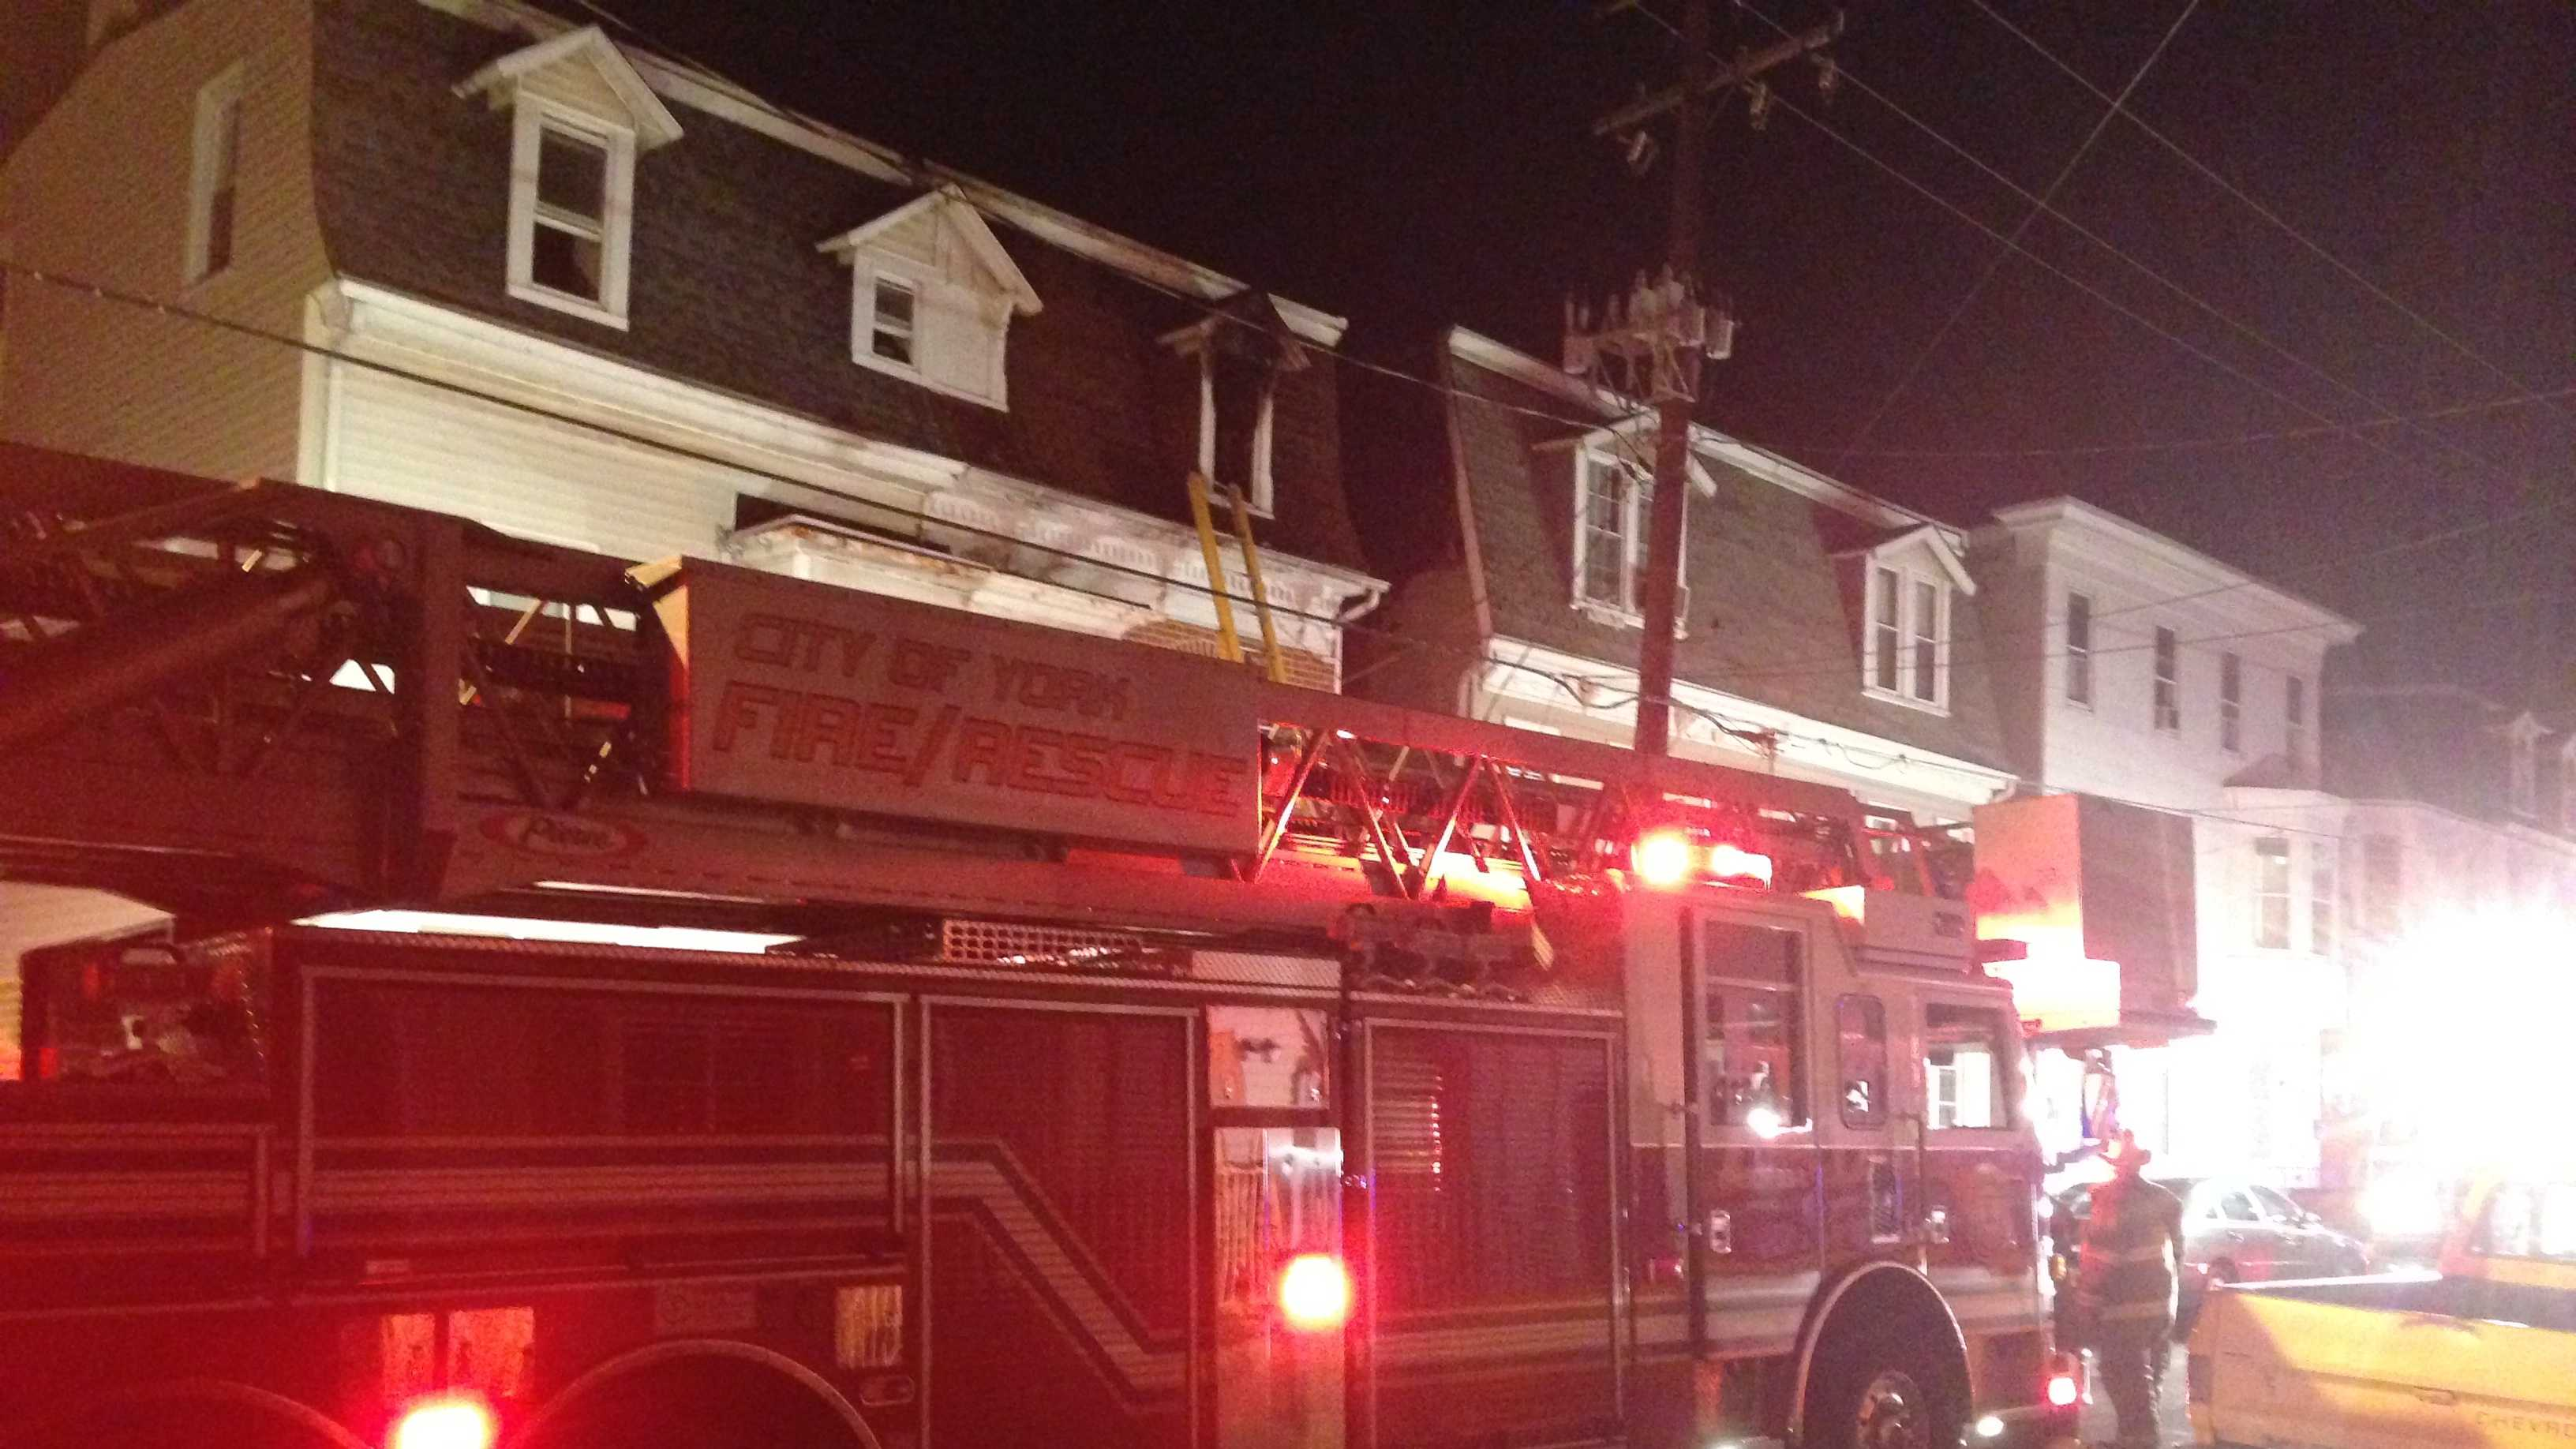 8.15.14 york house fire pic